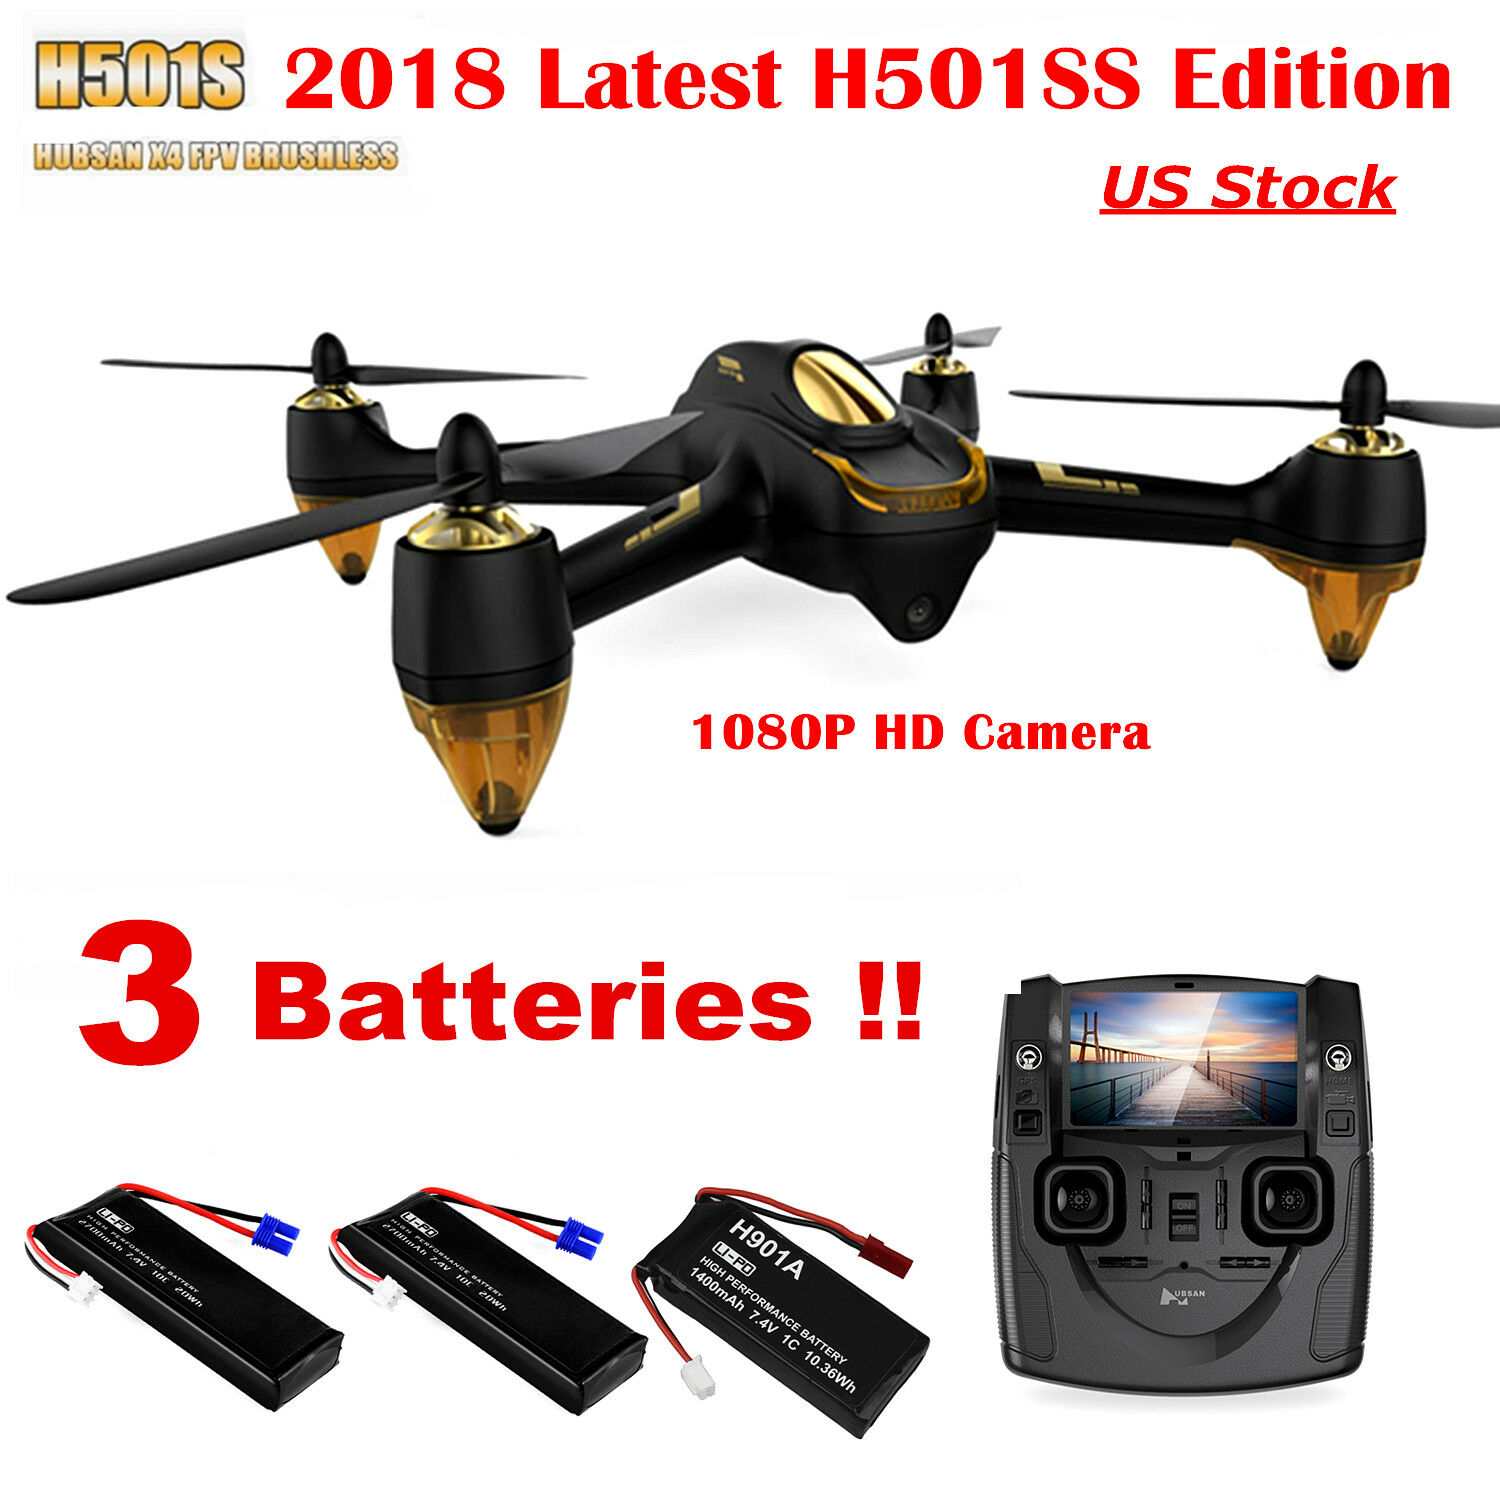 Hubsan X4 H501S Pro Drone Brushless 1080P FPV RC Quadcopter Follow Me GPS RTF US